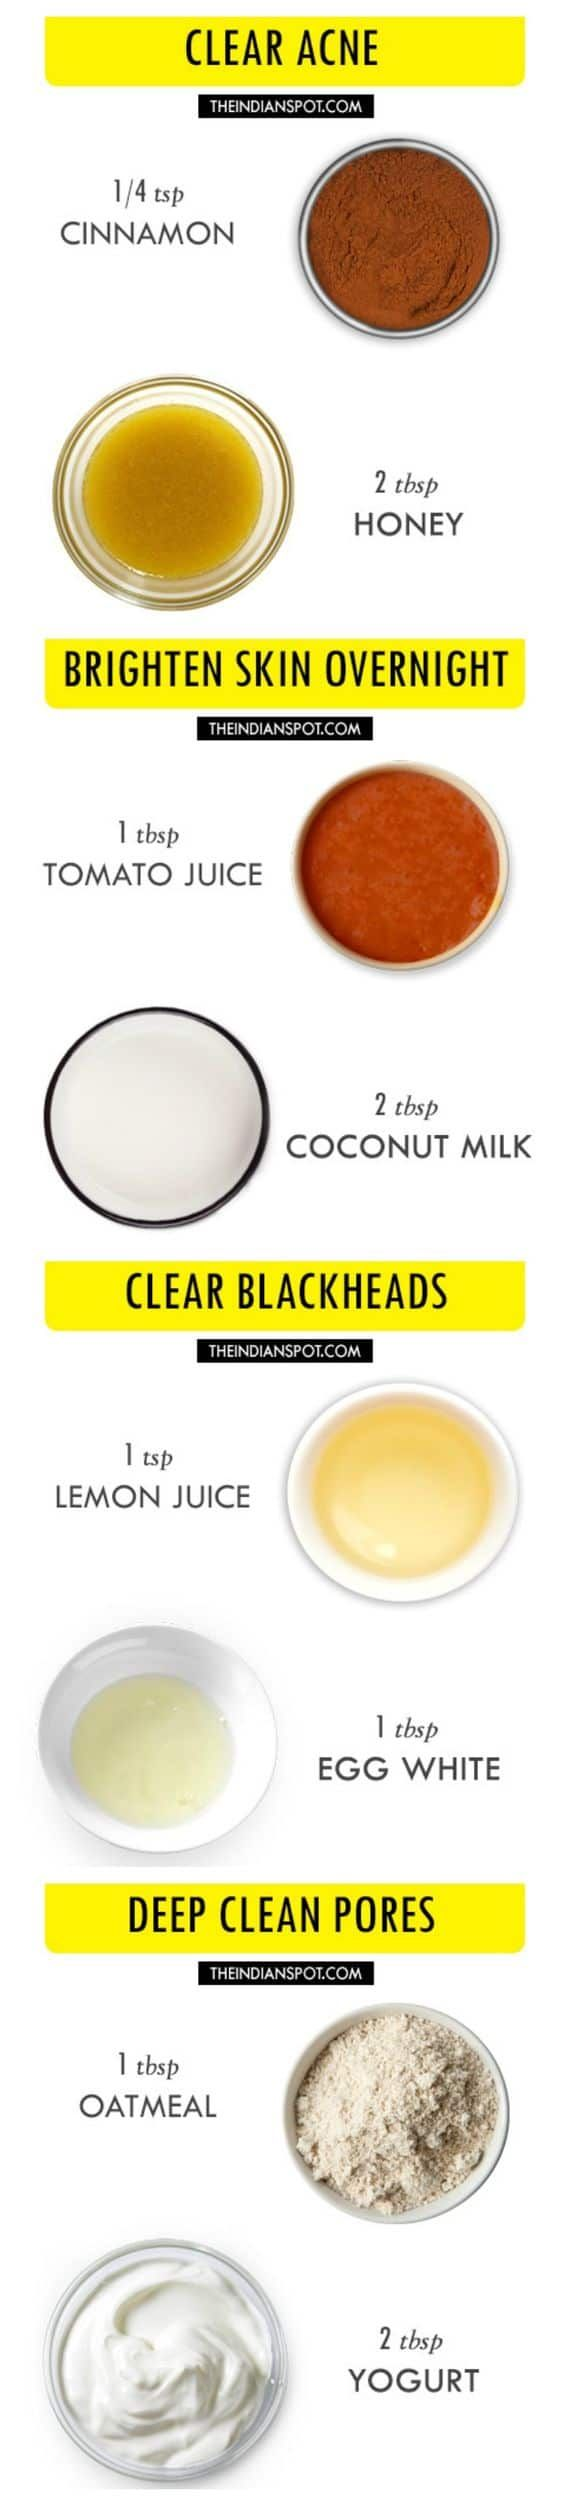 People with sensitive skin should try this DIY face mask for pores. It uses ground oatmeal as an exfoliator and yogurt to hydrate and nourish the skin.